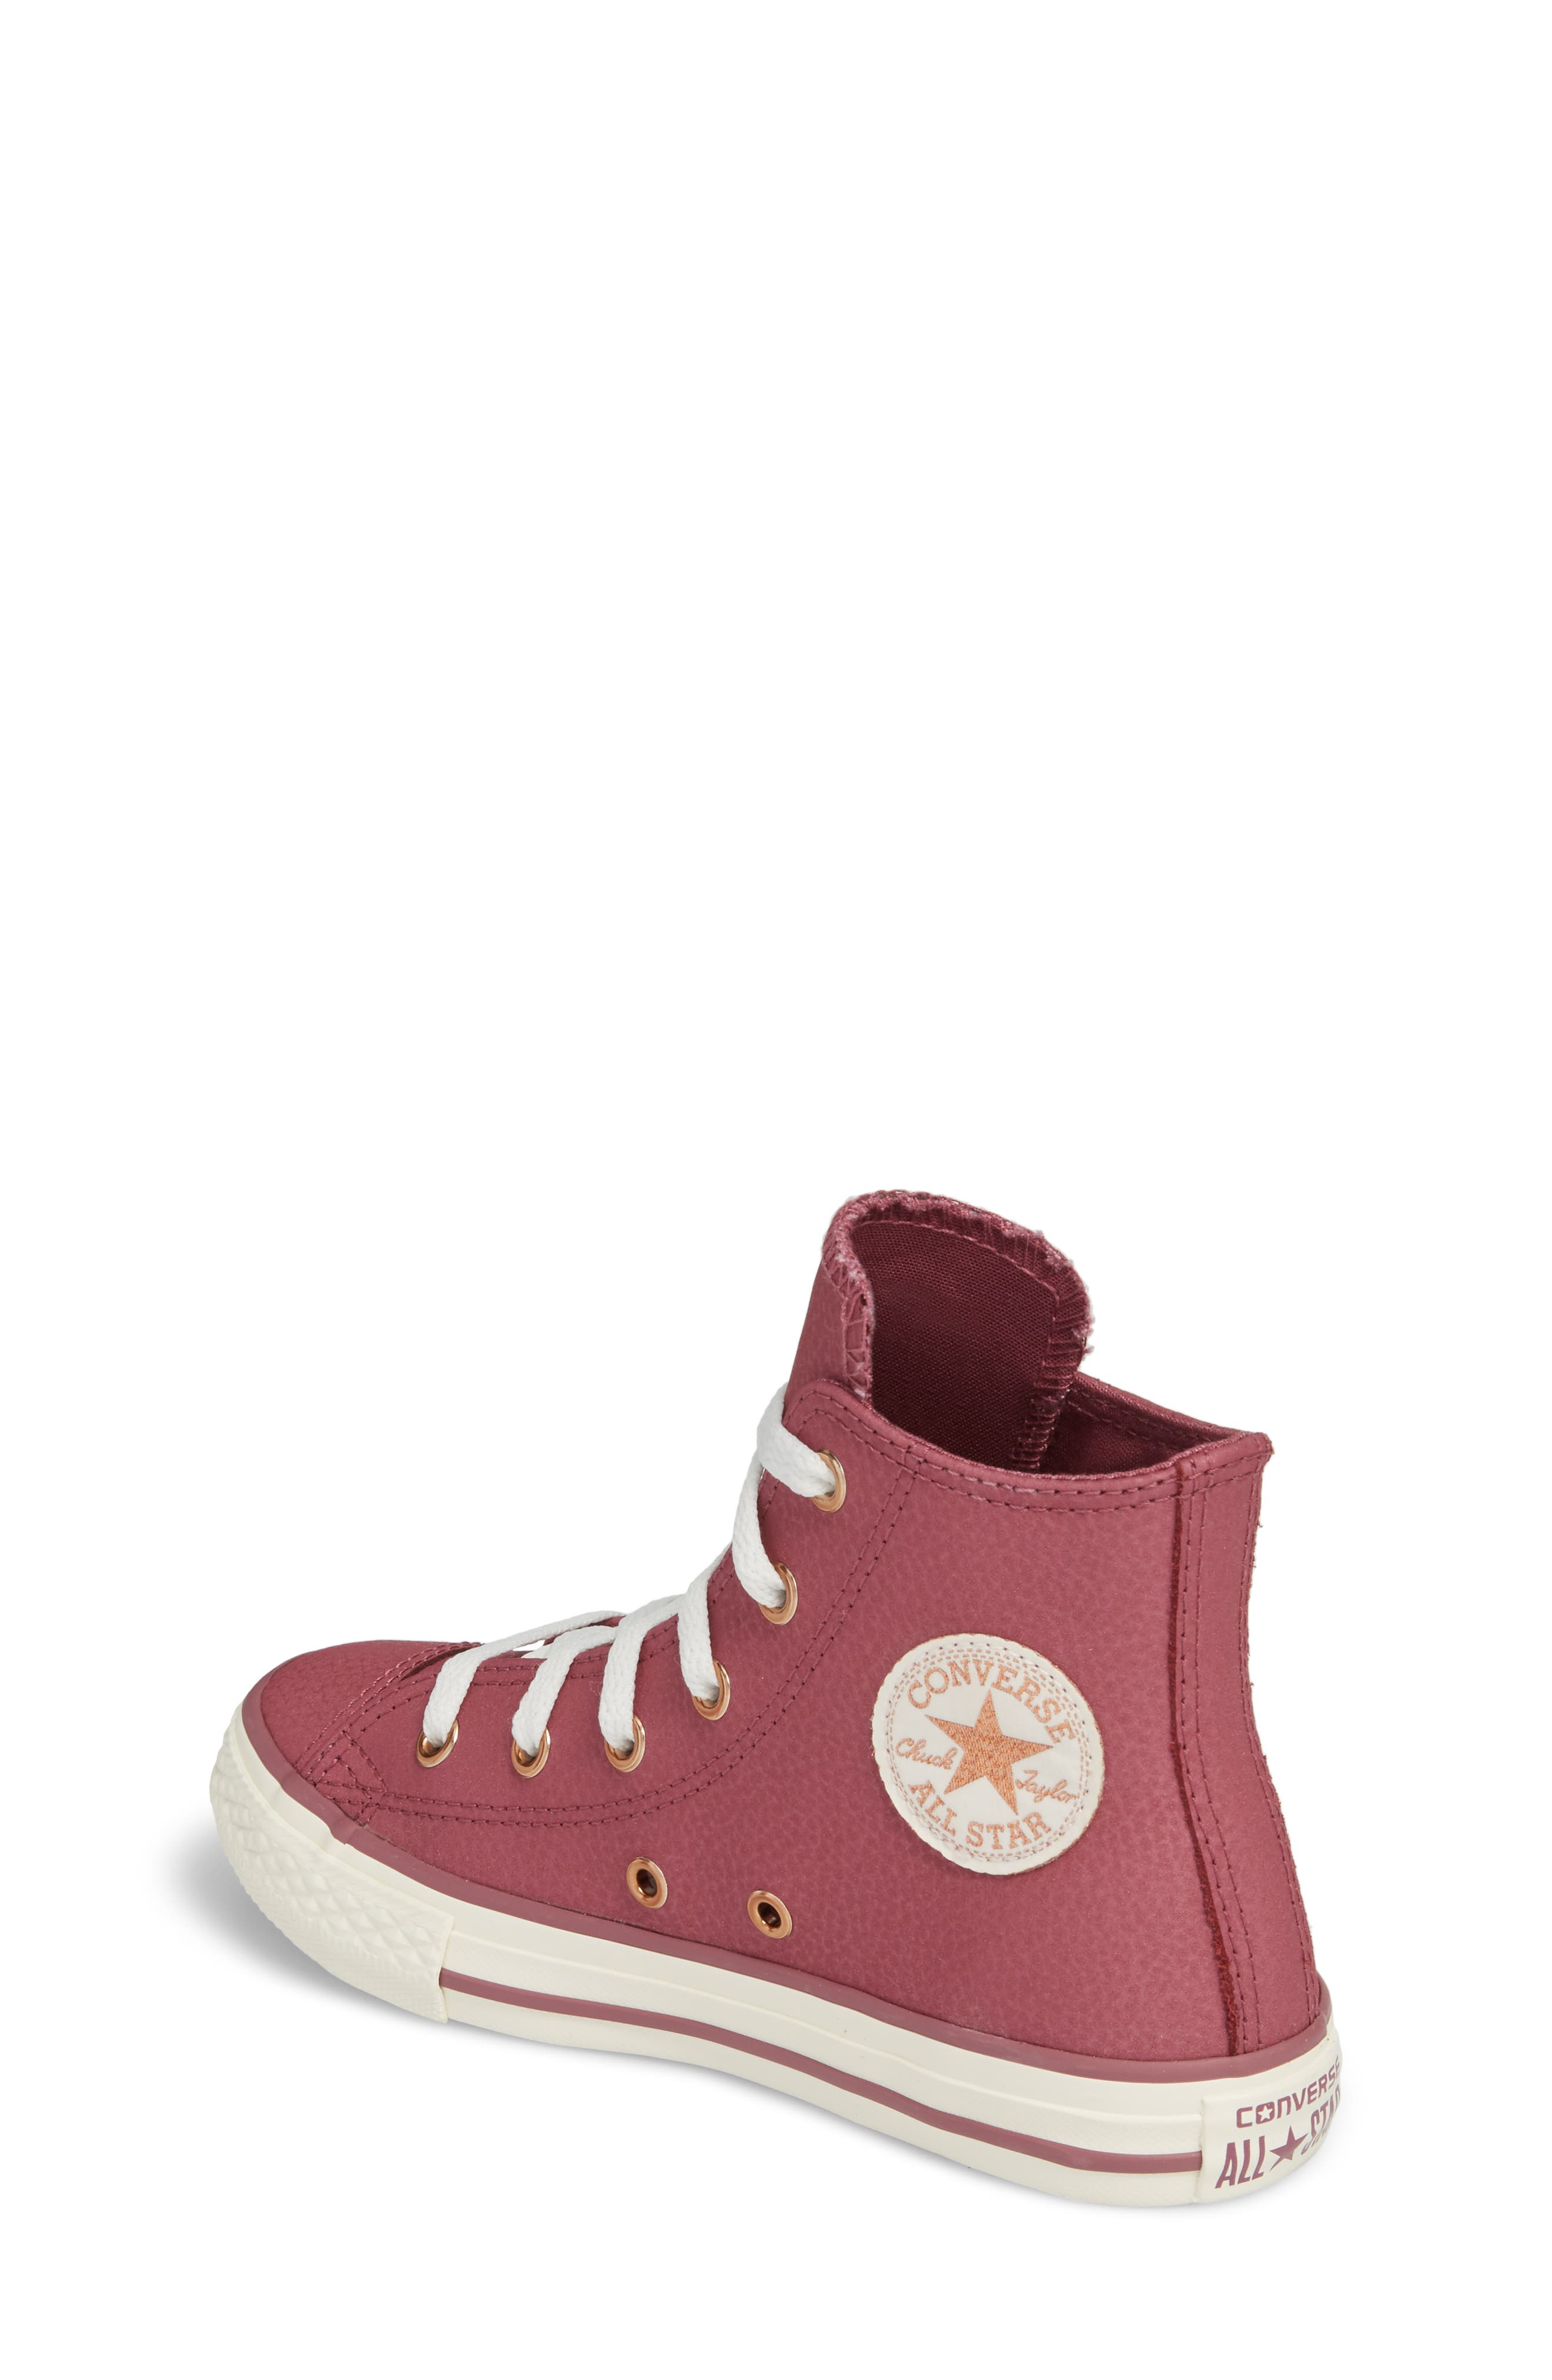 Chuck Taylor<sup>®</sup> All Star<sup>®</sup> High Top Sneaker,                             Alternate thumbnail 2, color,                             600